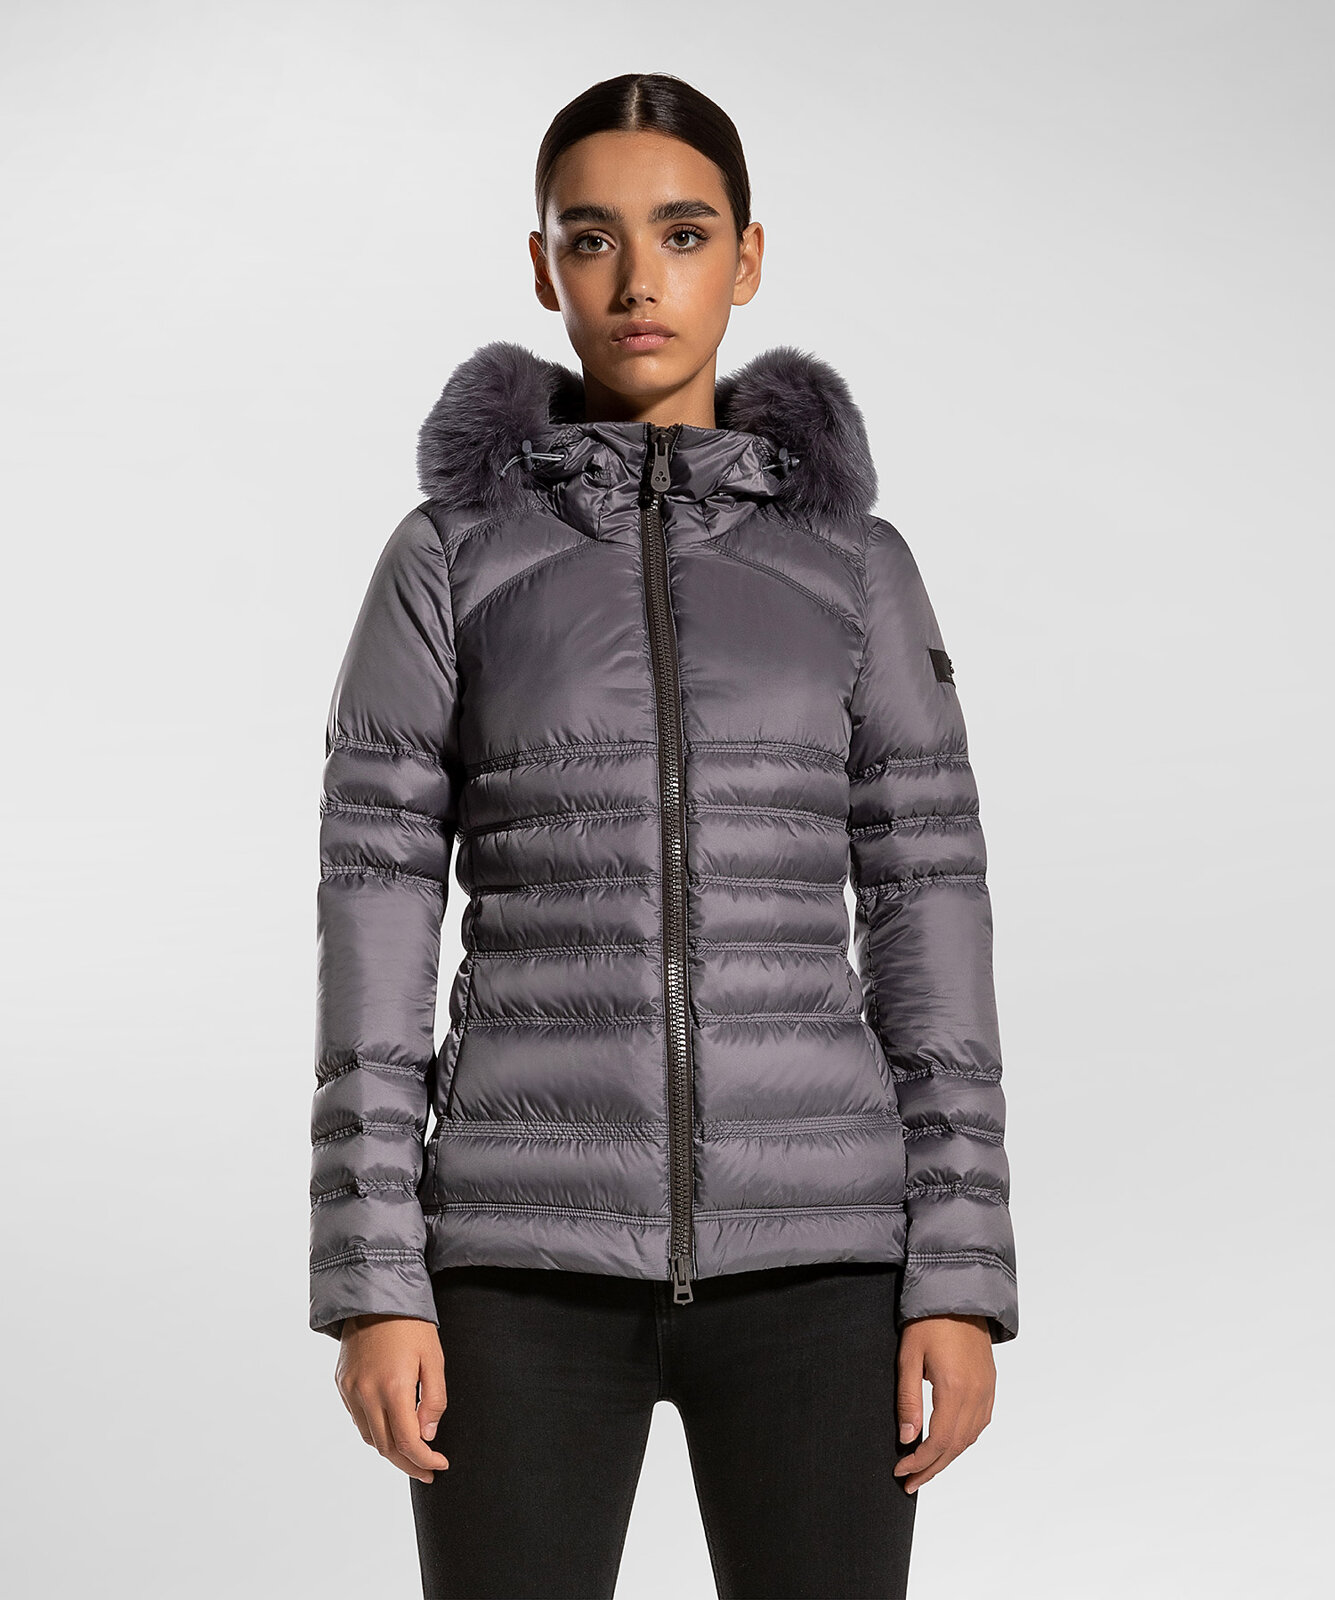 Superlight and Slim down jacket - Peuterey